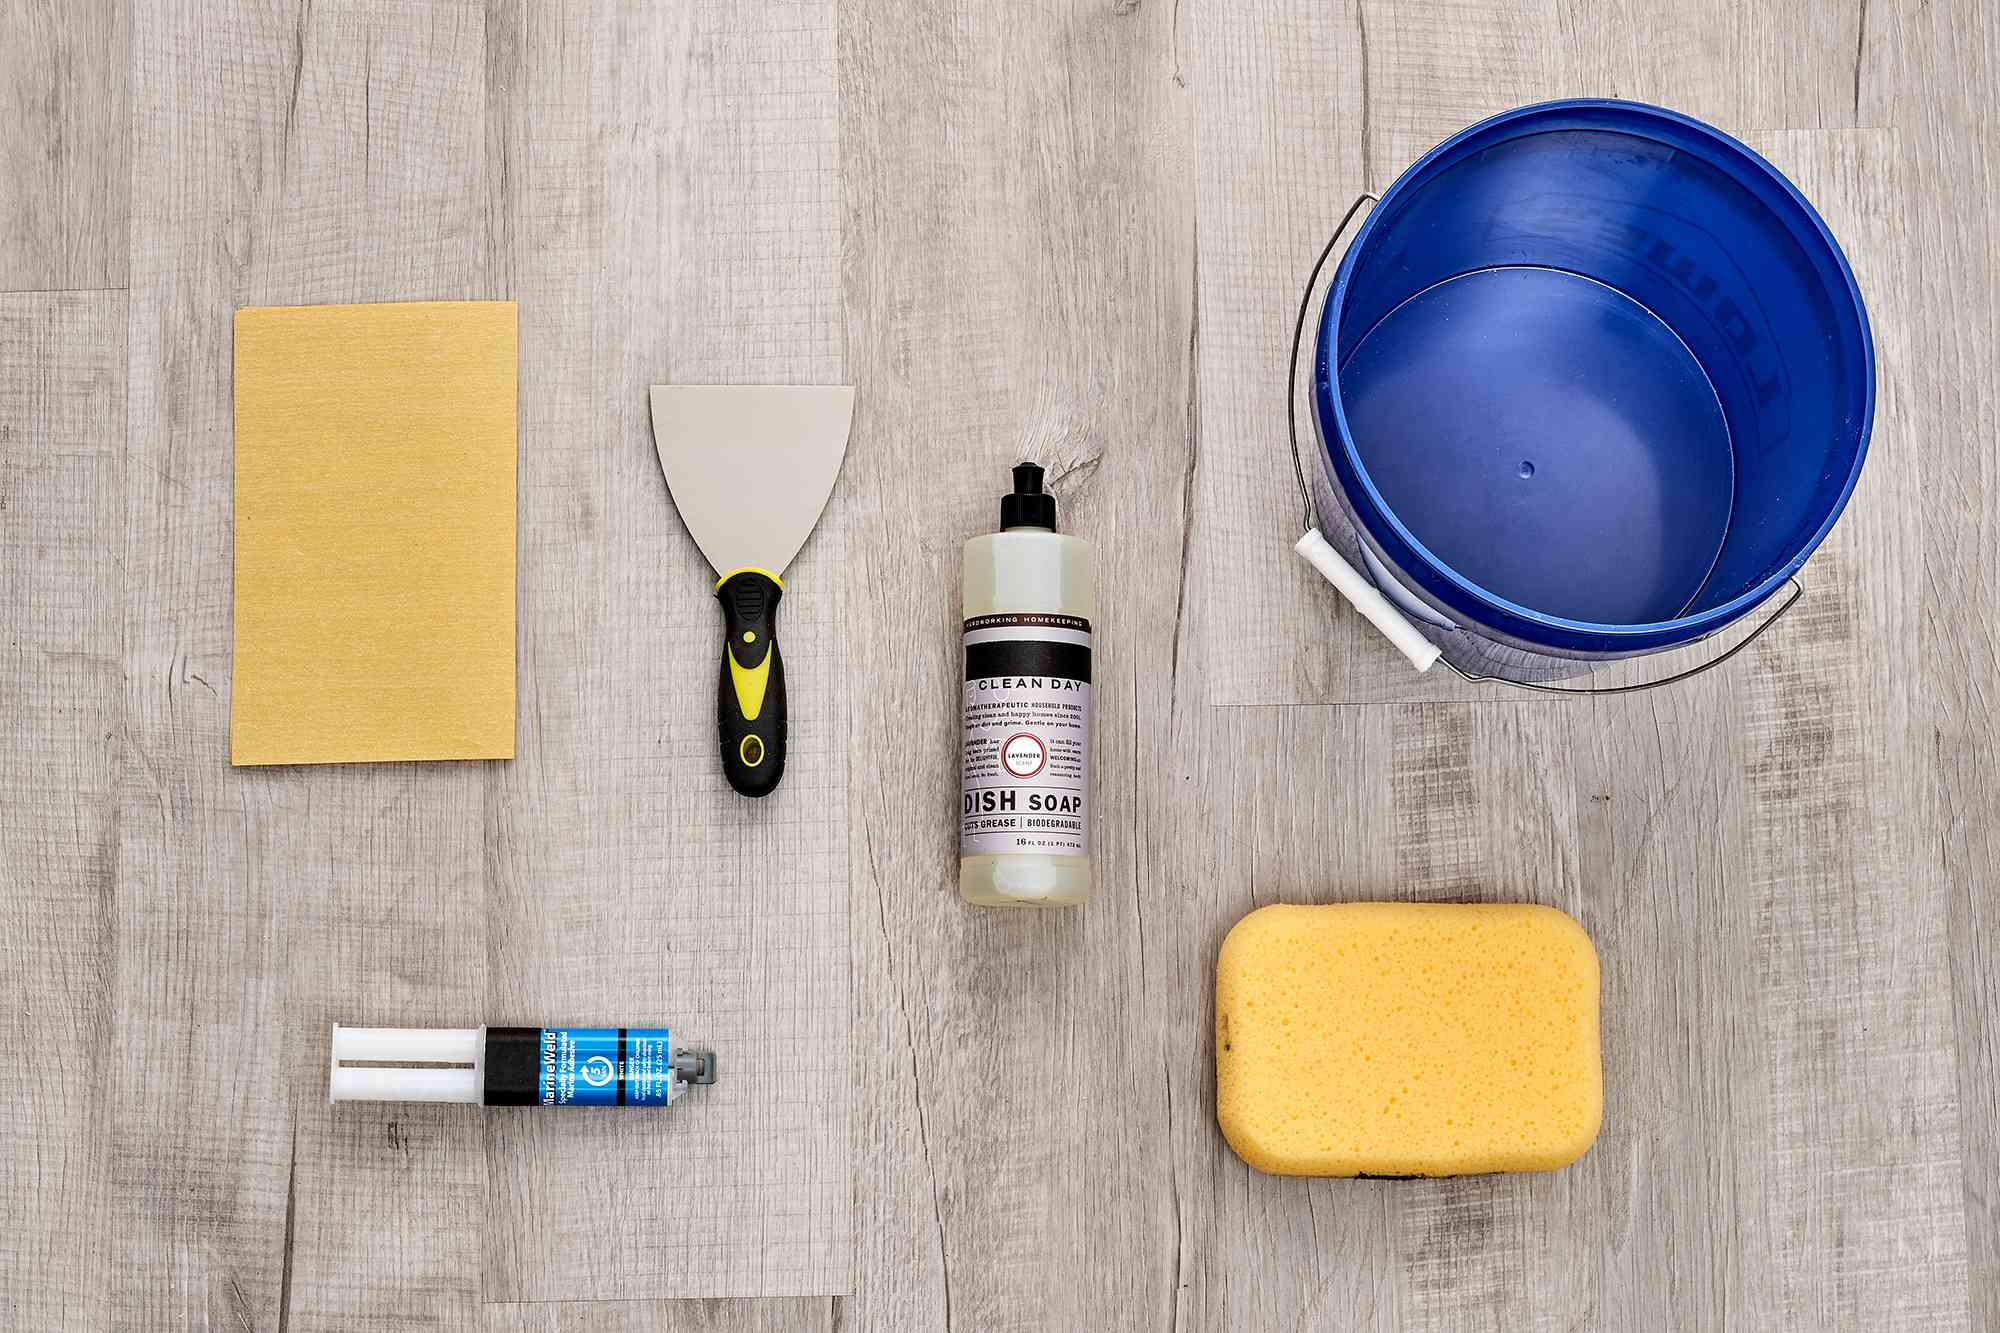 Materials and tools to fix a hairline crack on toilet tank or bowl